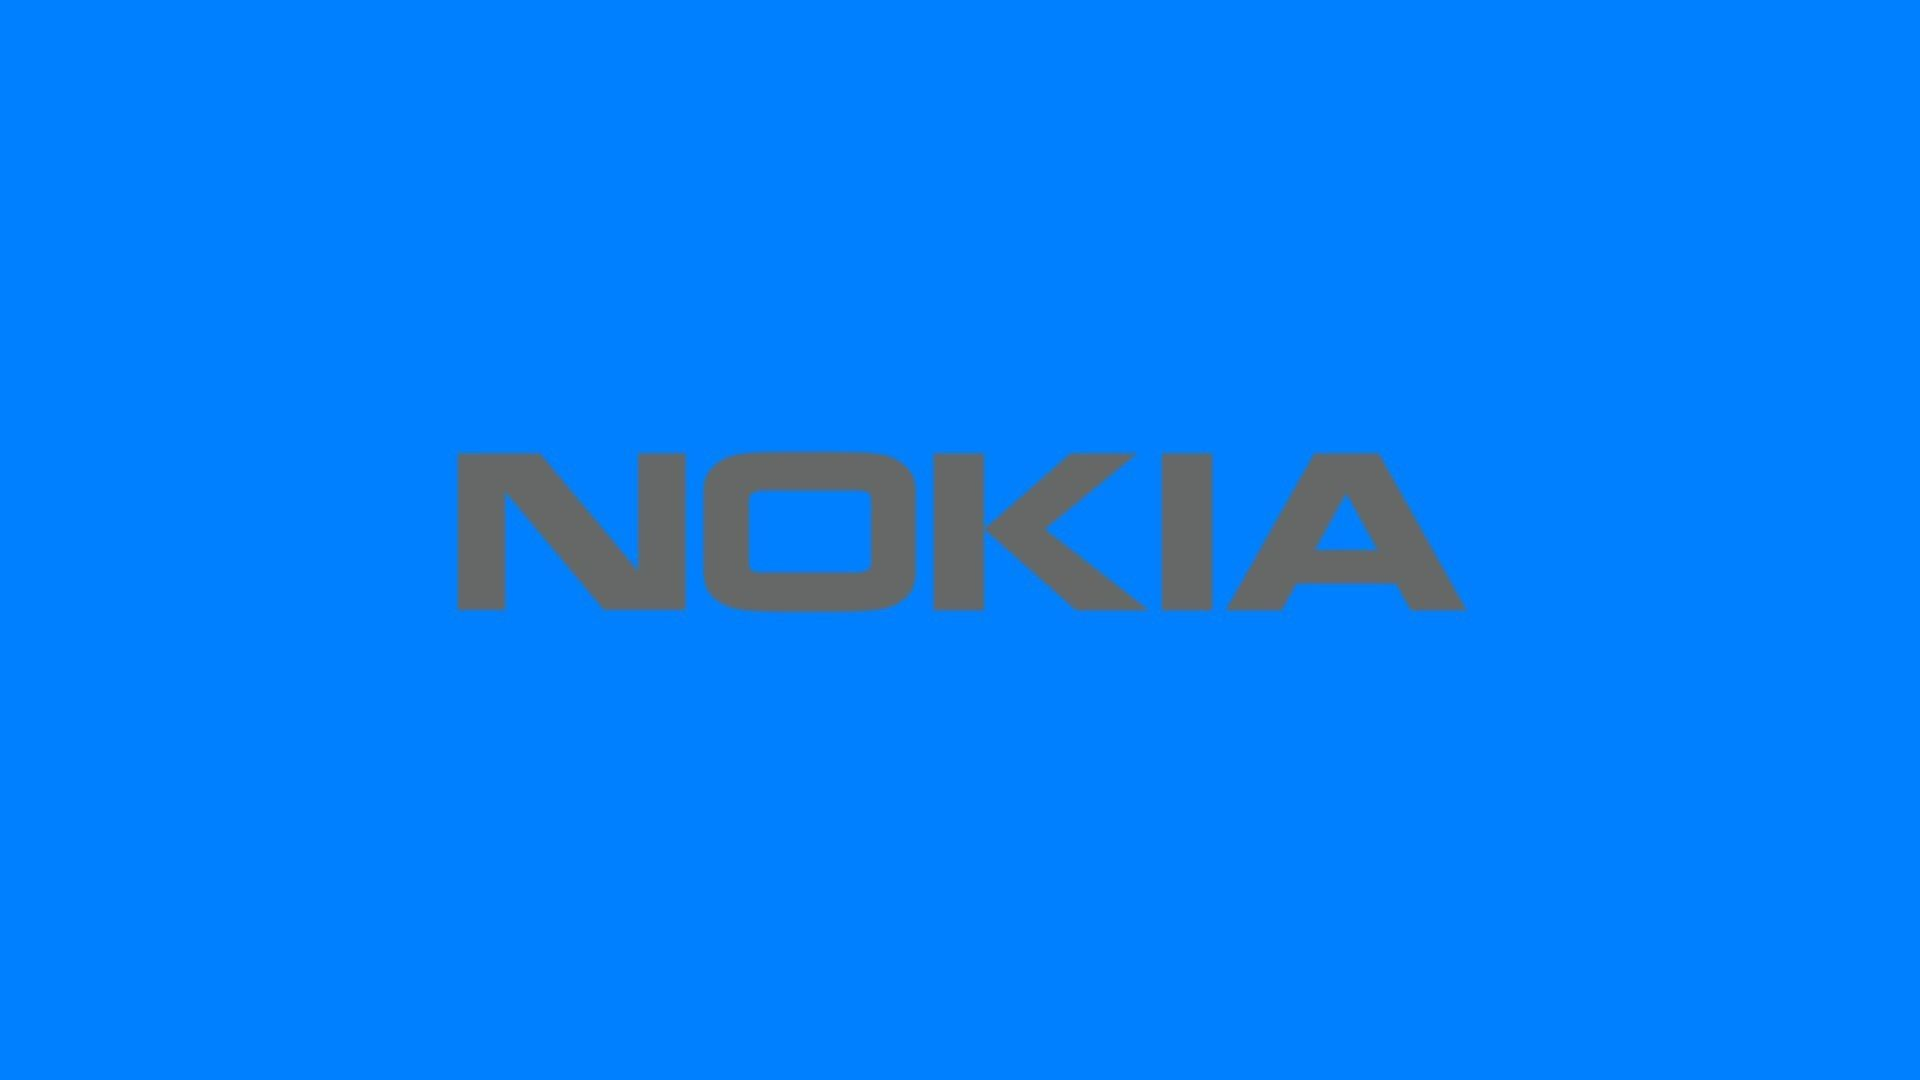 Nokia Logo Wallpapers Top Free Nokia Logo Backgrounds Wallpaperaccess